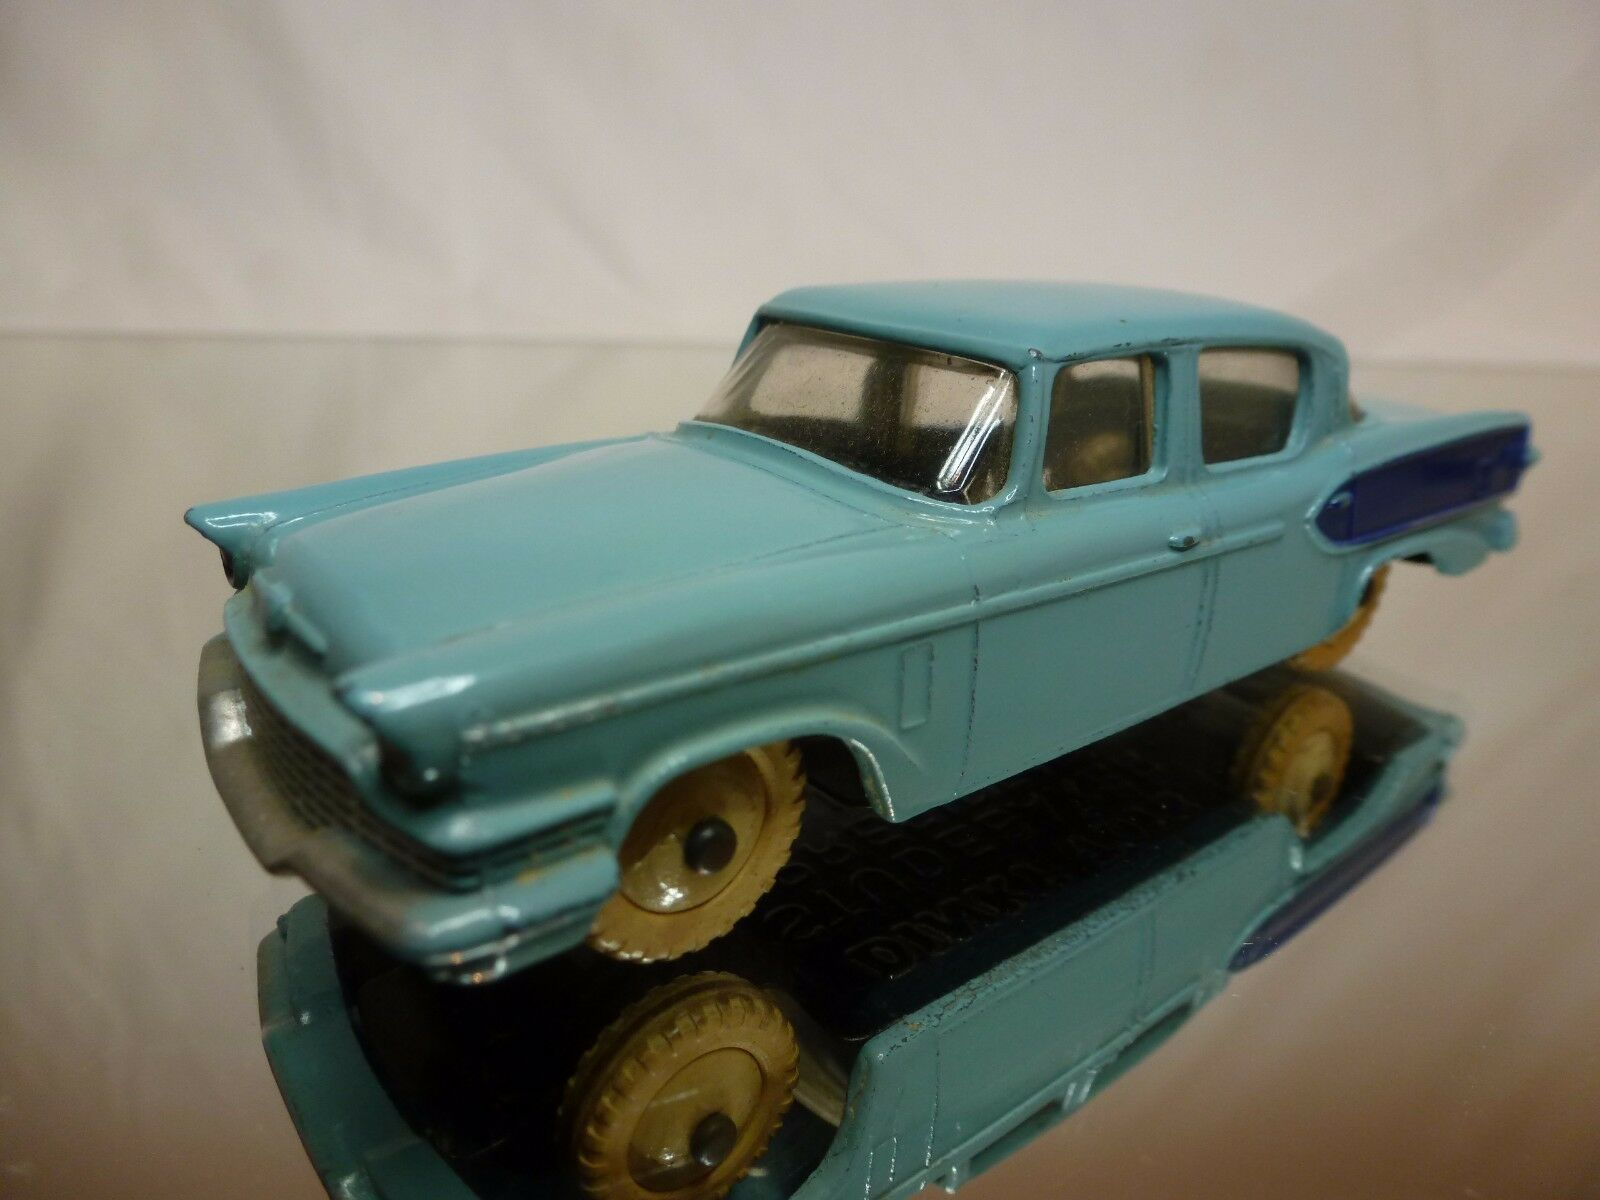 DINKY TOYS 179 STUDEBAKER PRESIDENT -  TWO TONE blueeE  1 43 - VERY GOOD CONDITION